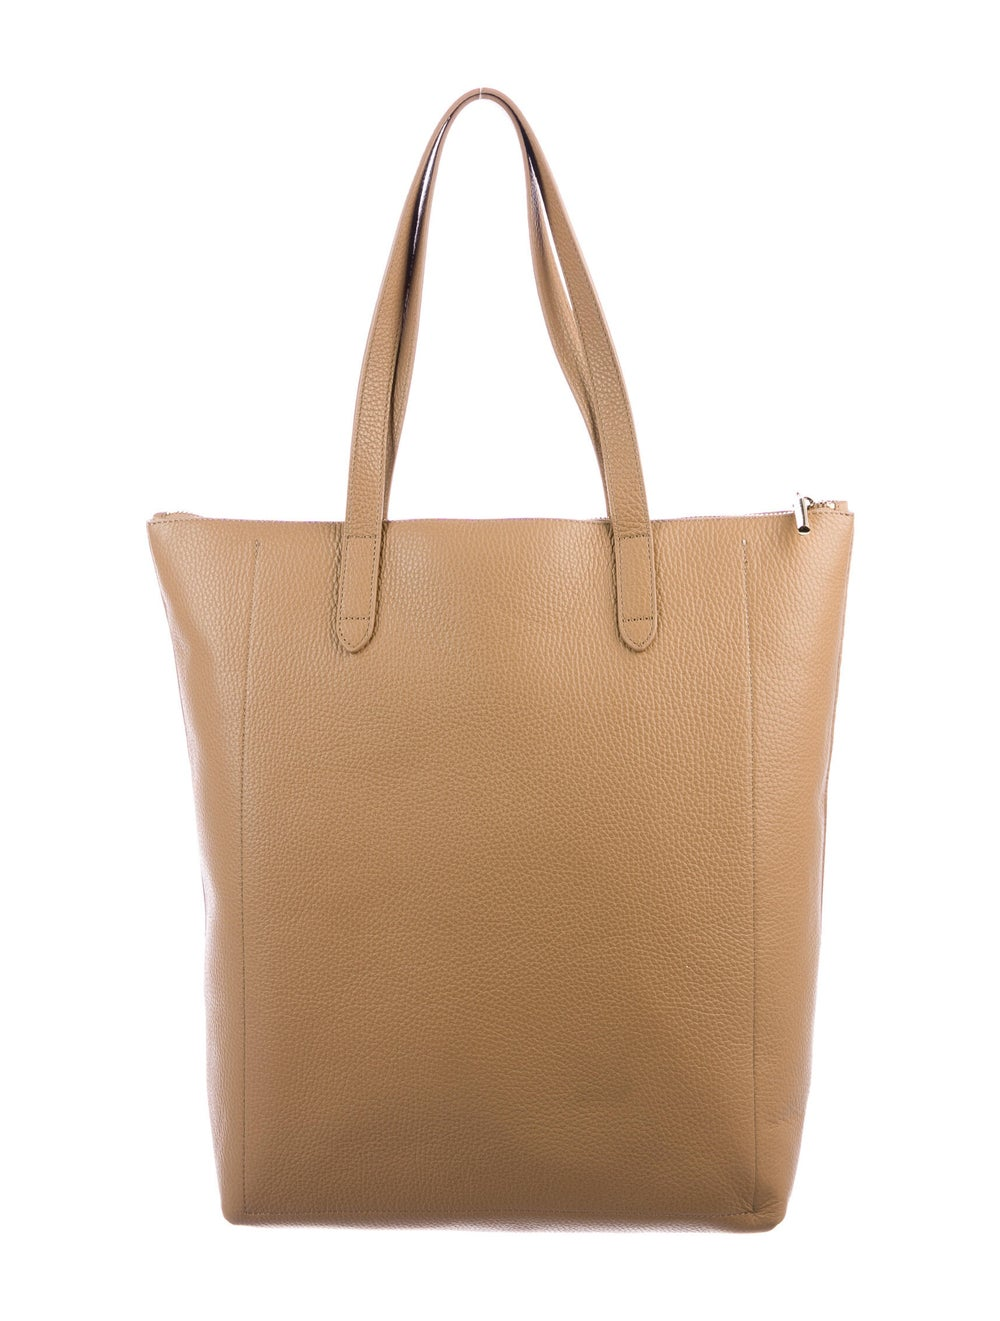 Cuyana Large Leather Tote Brown - image 4